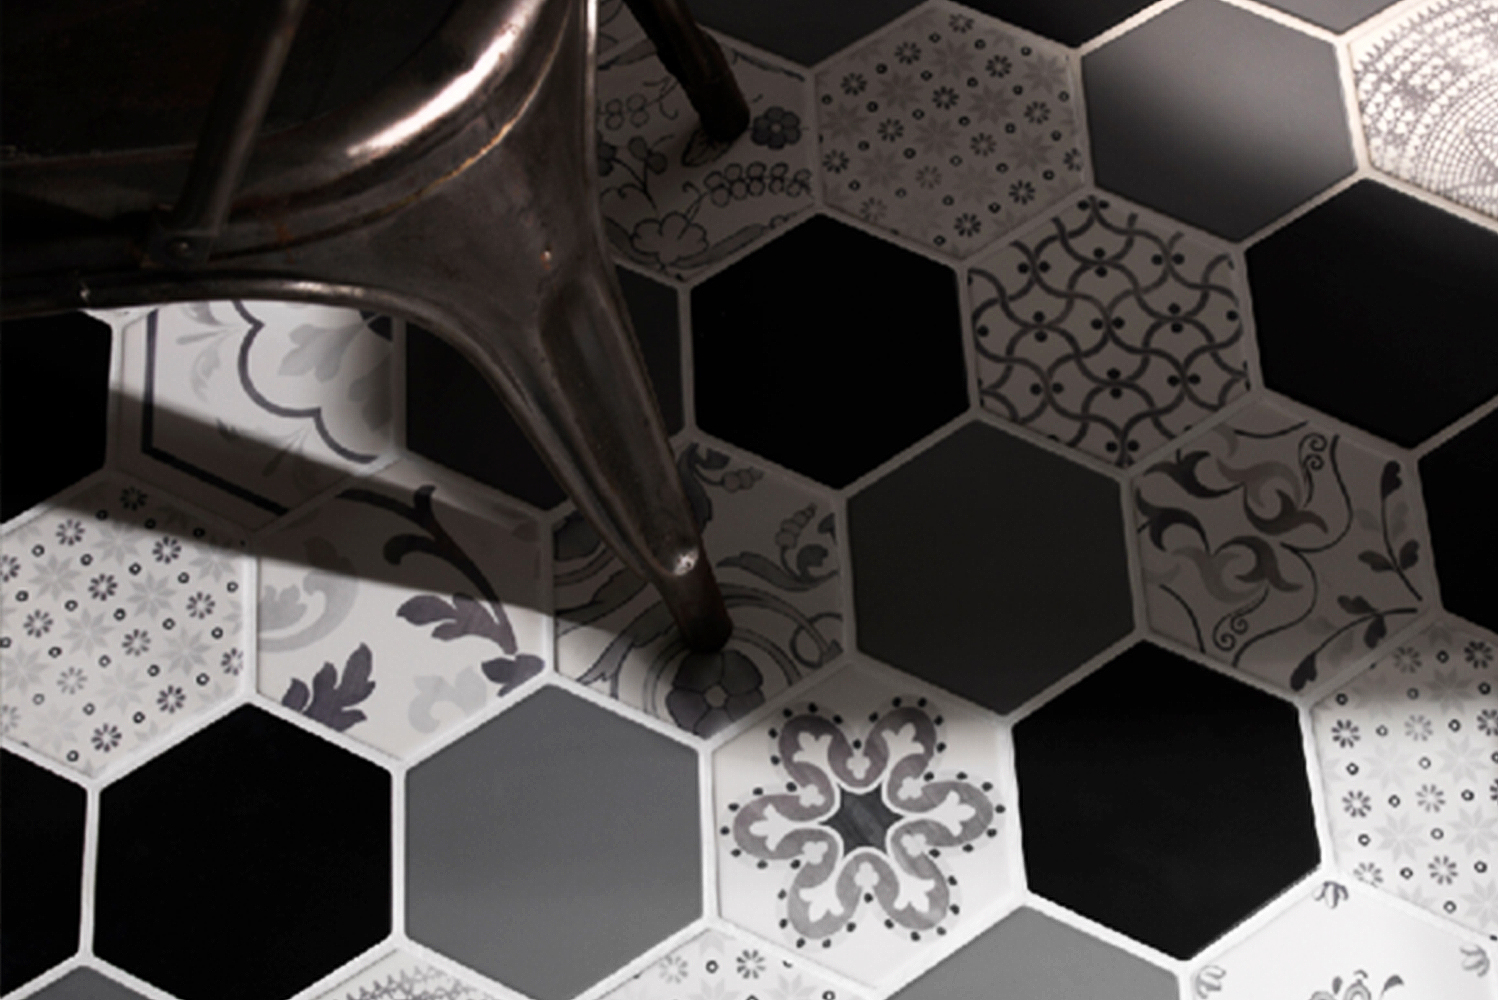 Available in a variety of solids, reliefs, tredi and graphic patterns, the new hexagonal porcelain collection is also available in a selection of styles and patterns.